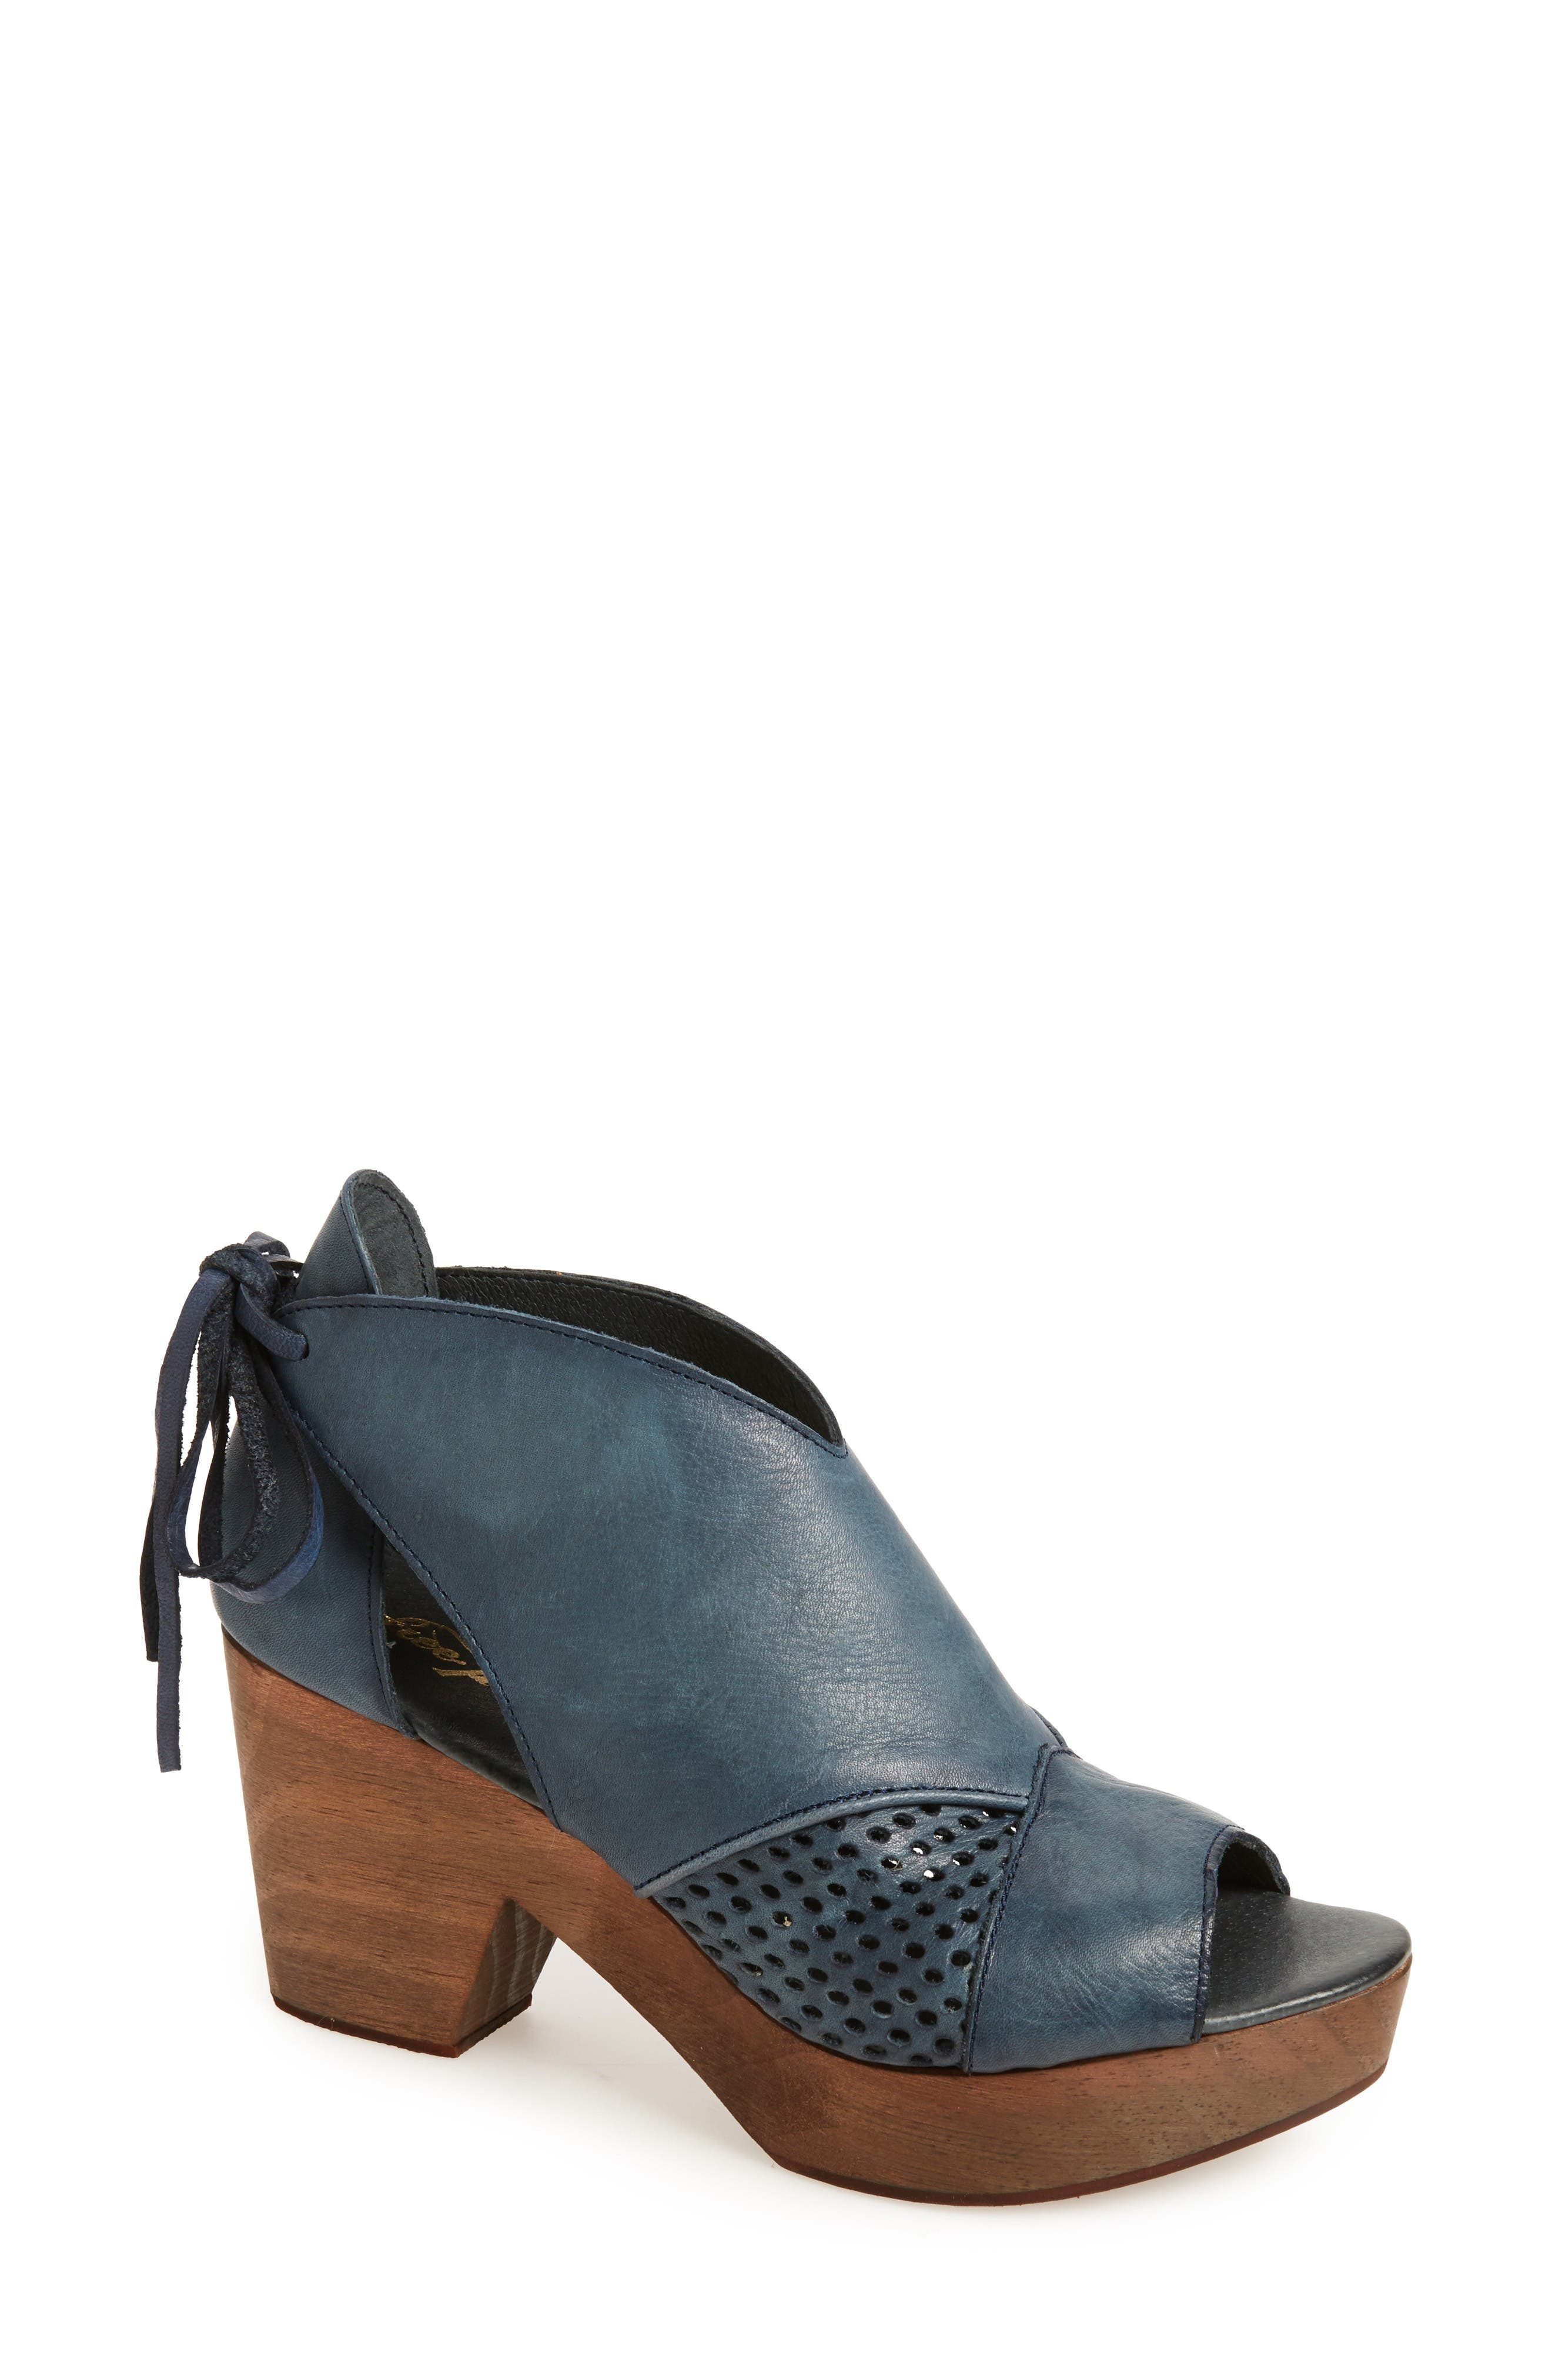 FREE PEOPLE Revolver Open-Toe Clog